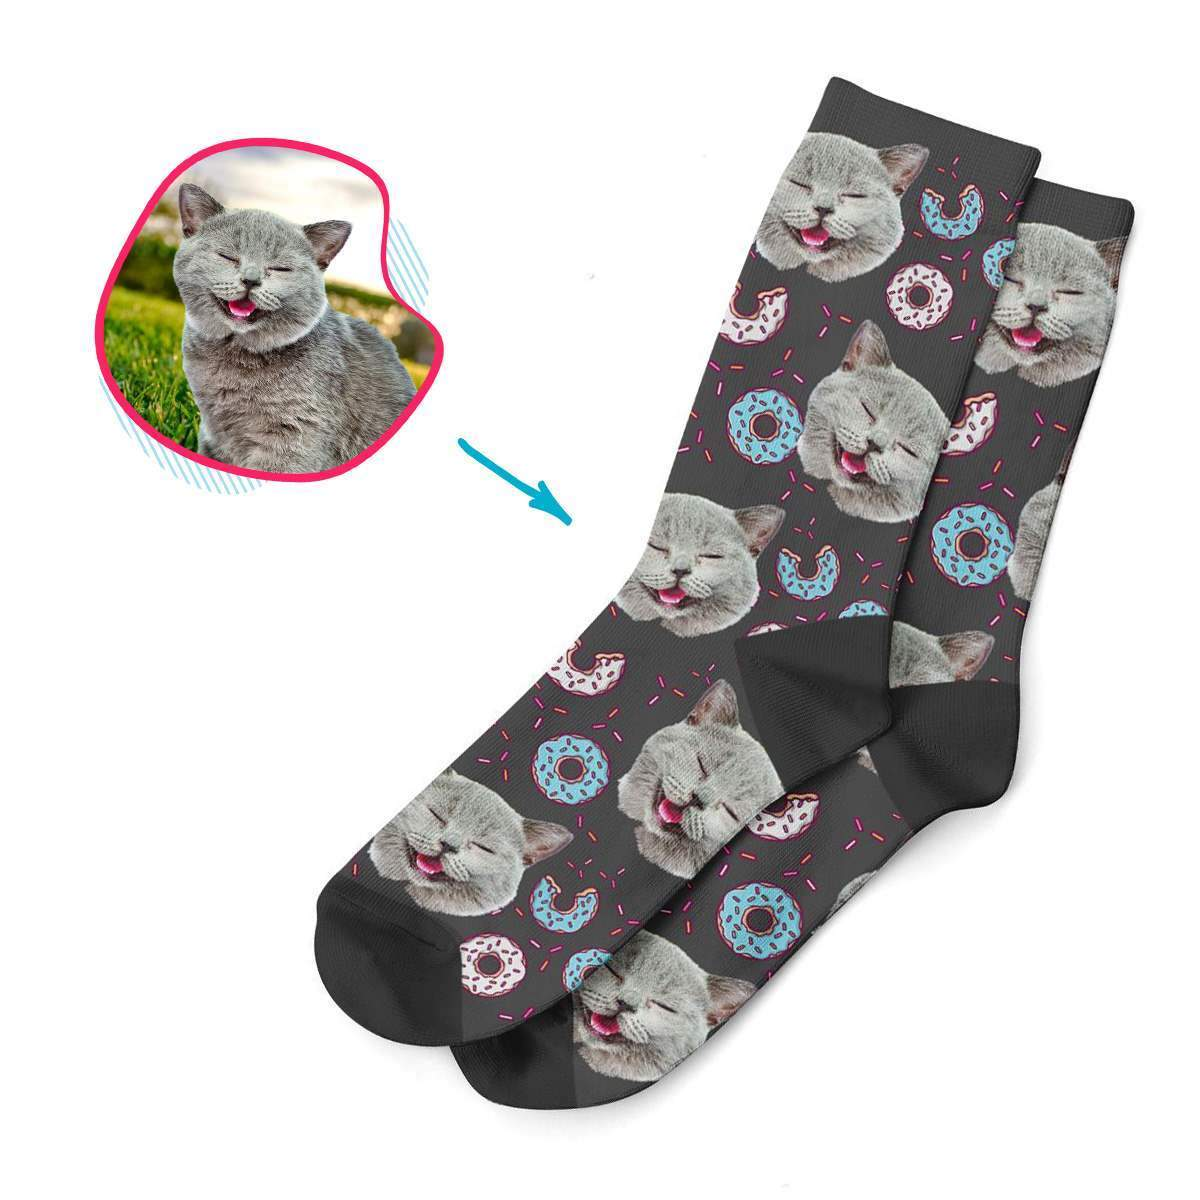 dark Donuts socks personalized with photo of face printed on them